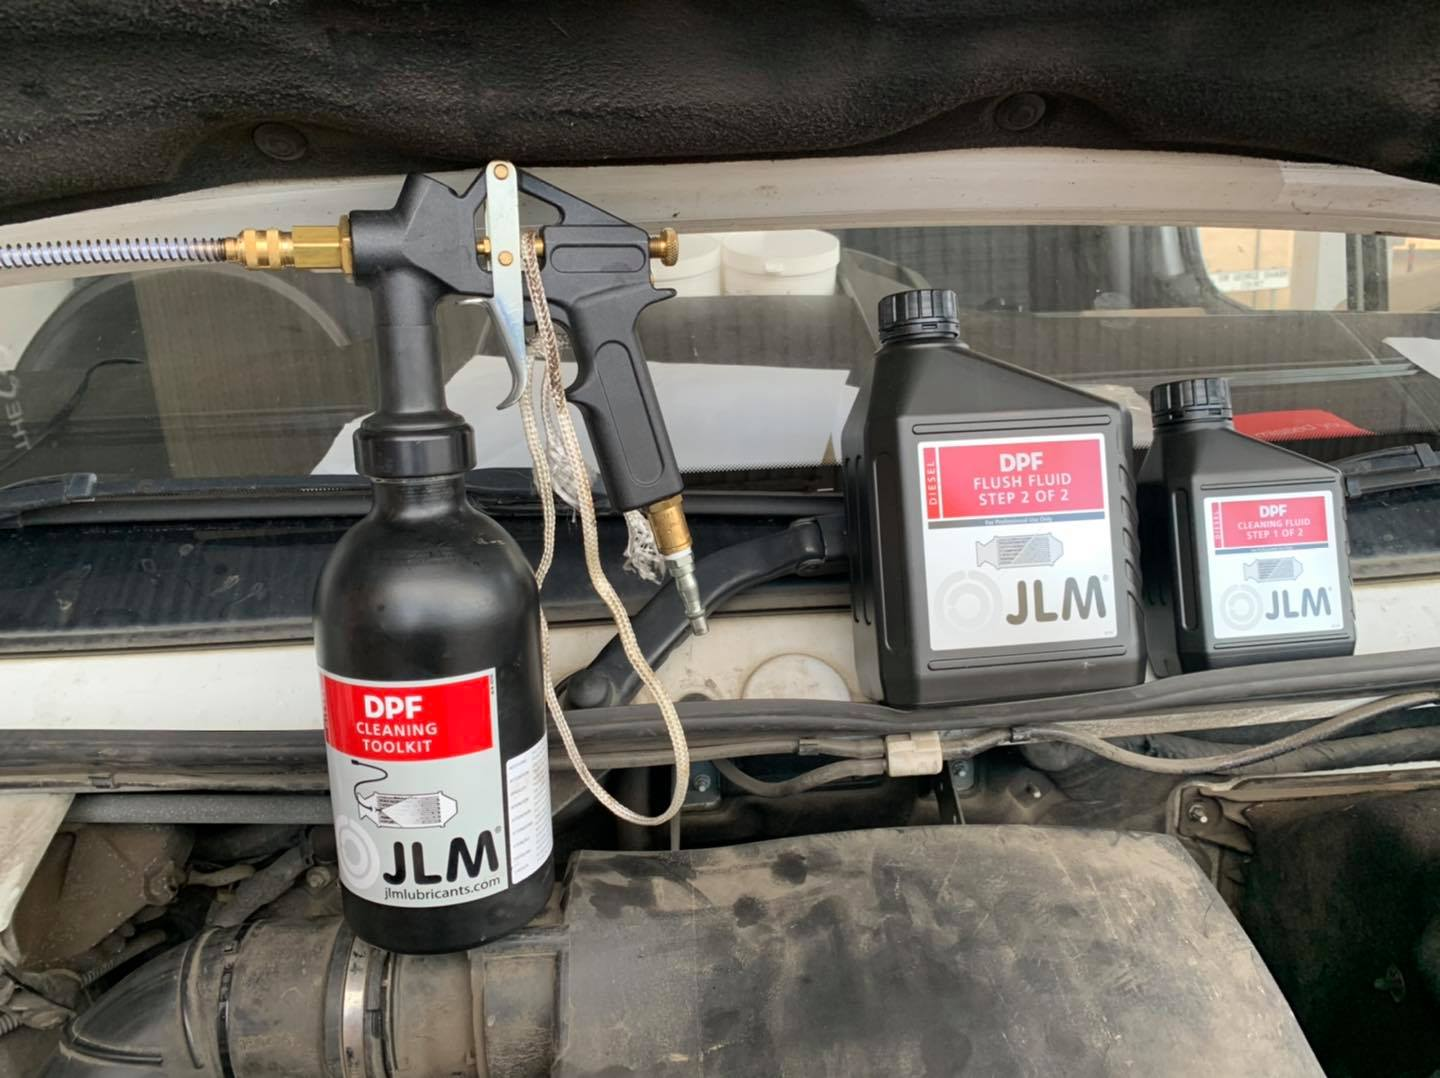 DPF Cleaning with JLM products on display on a mercedes sprinter